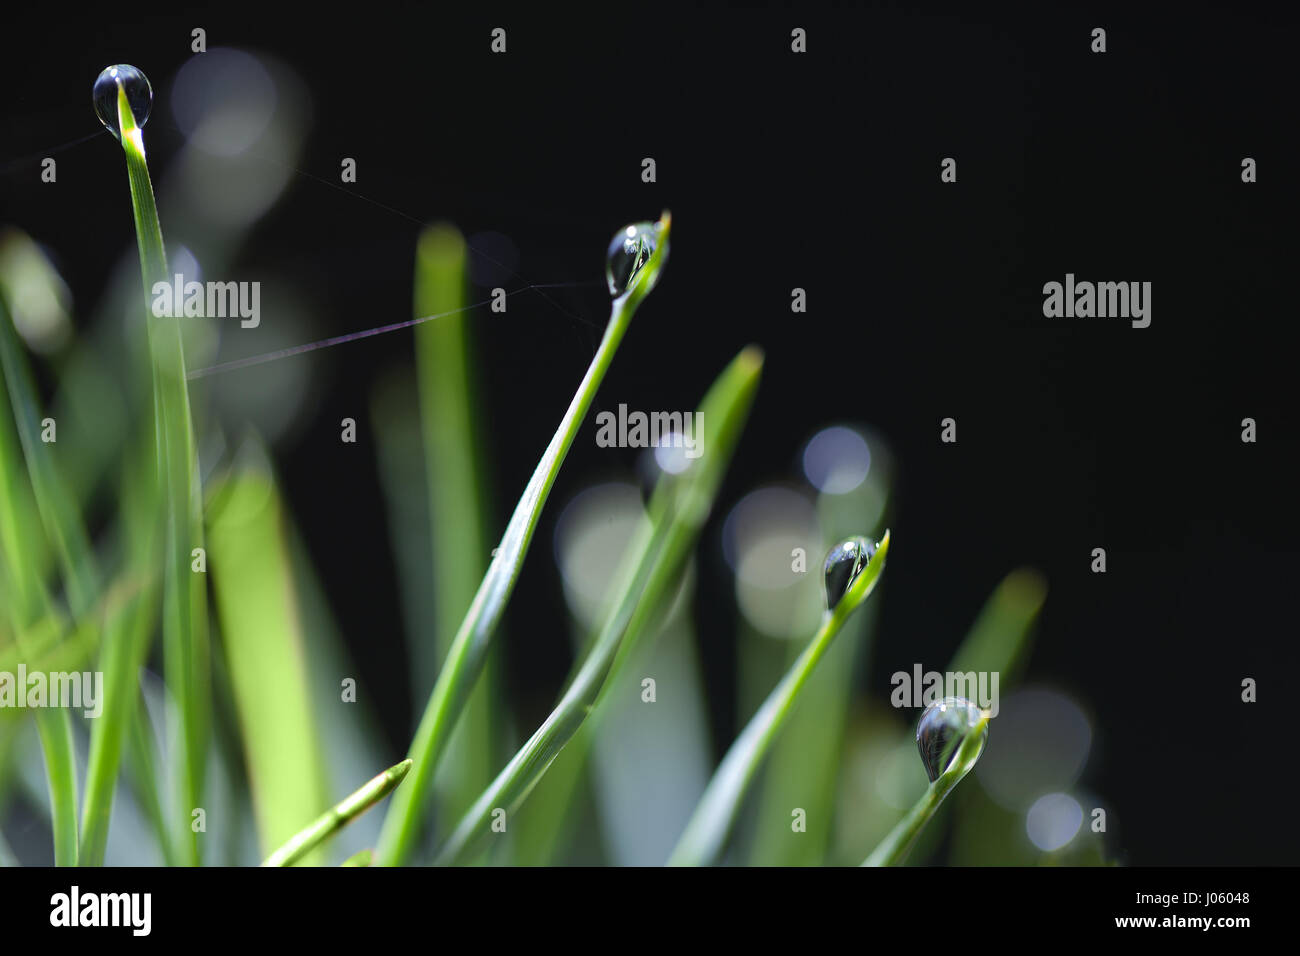 Water drops on green needled. - Stock Image